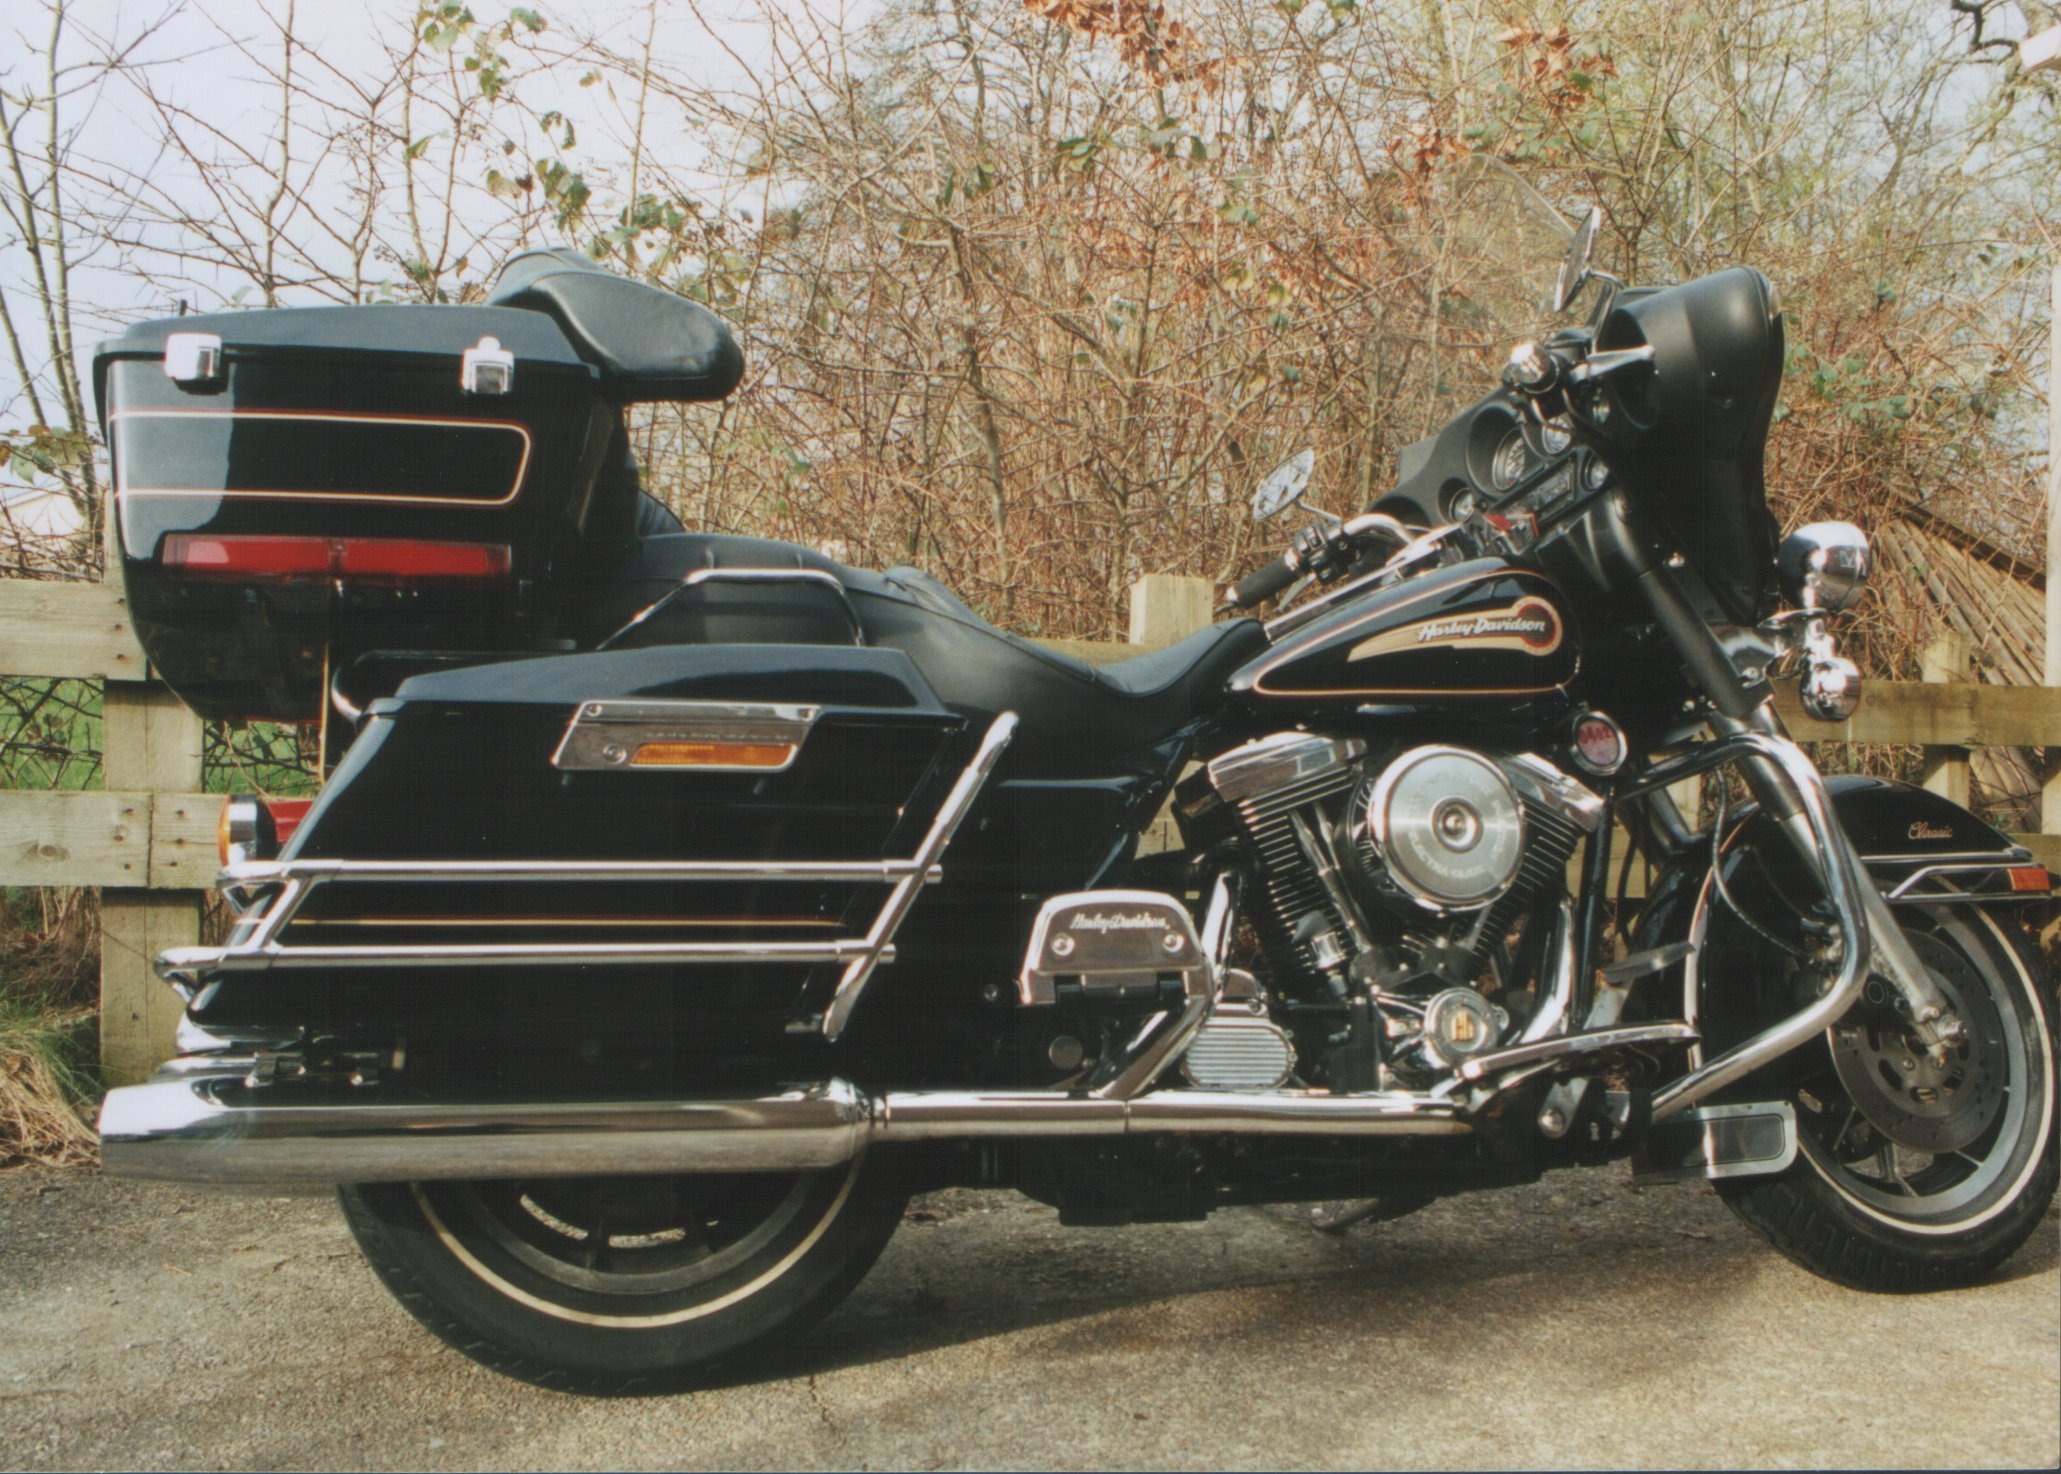 Harley-Davidson FLHTC 1340 Electra Glide Classic 1984 images #79775